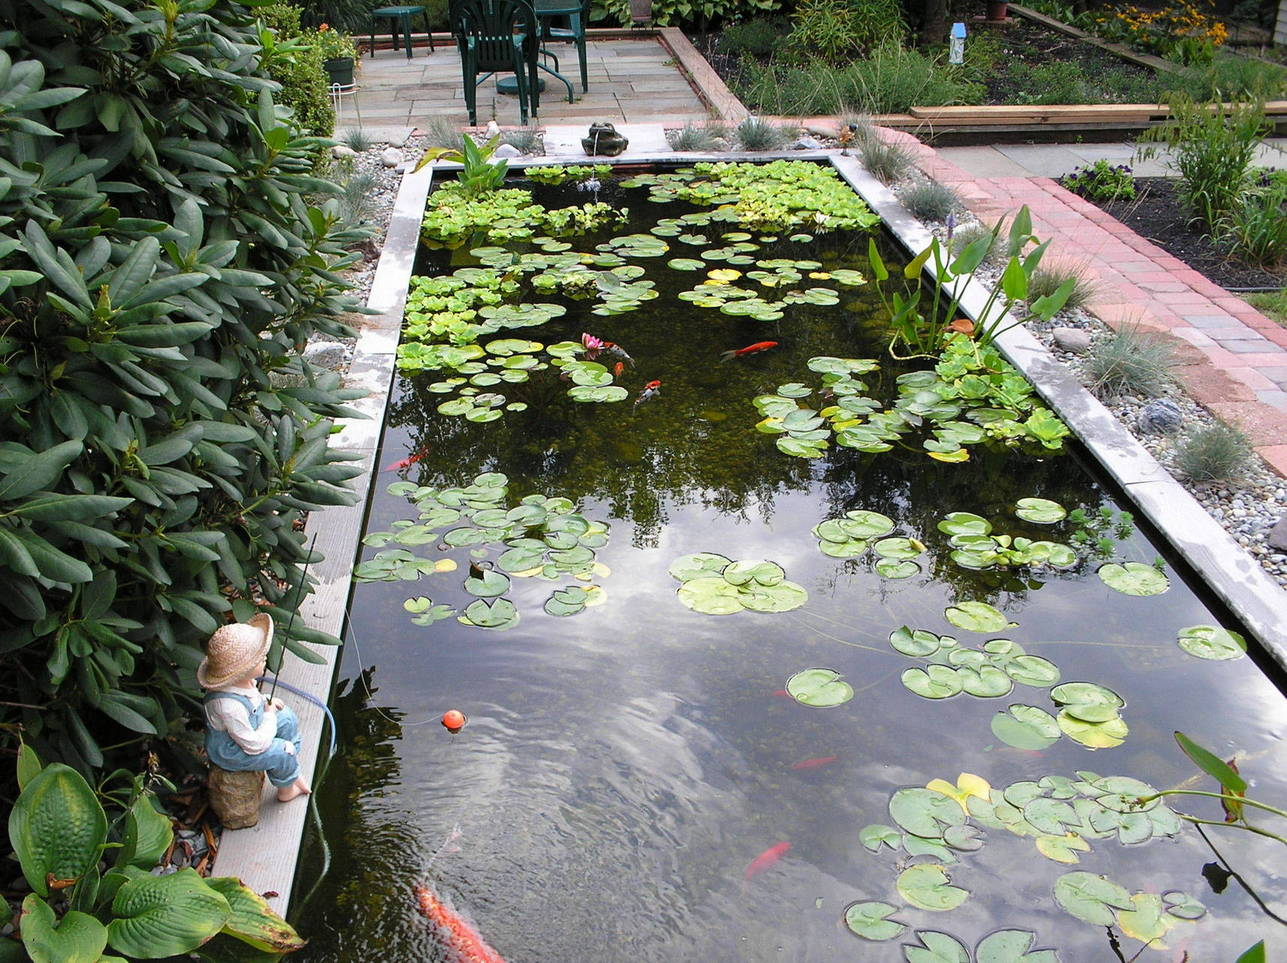 Big koi fish pond design ideas home trendy for Small pond ideas pictures